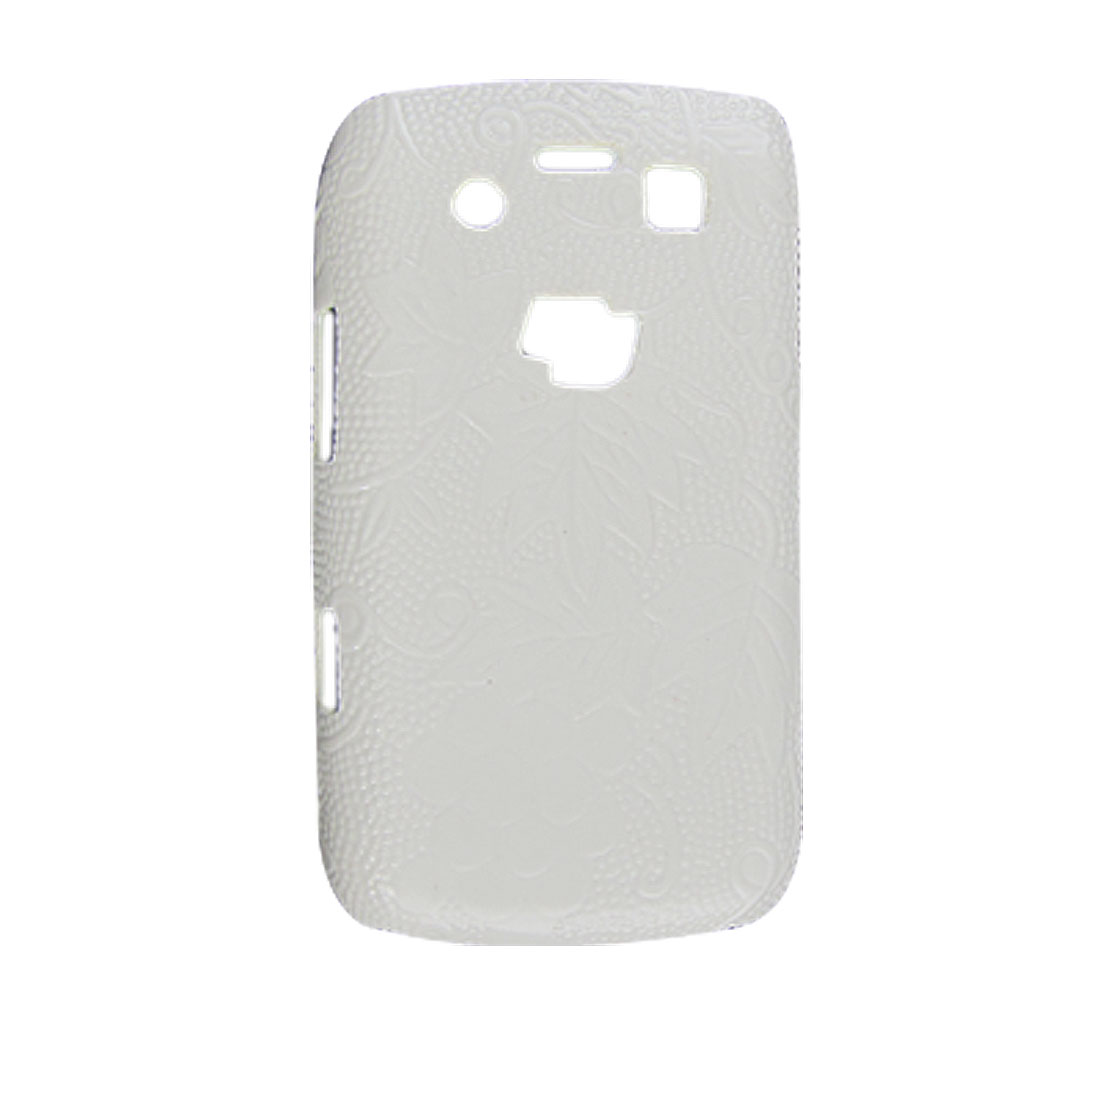 Grape Hard Plastic Faux Leather Coated Back Case for Blackberry 9700 White